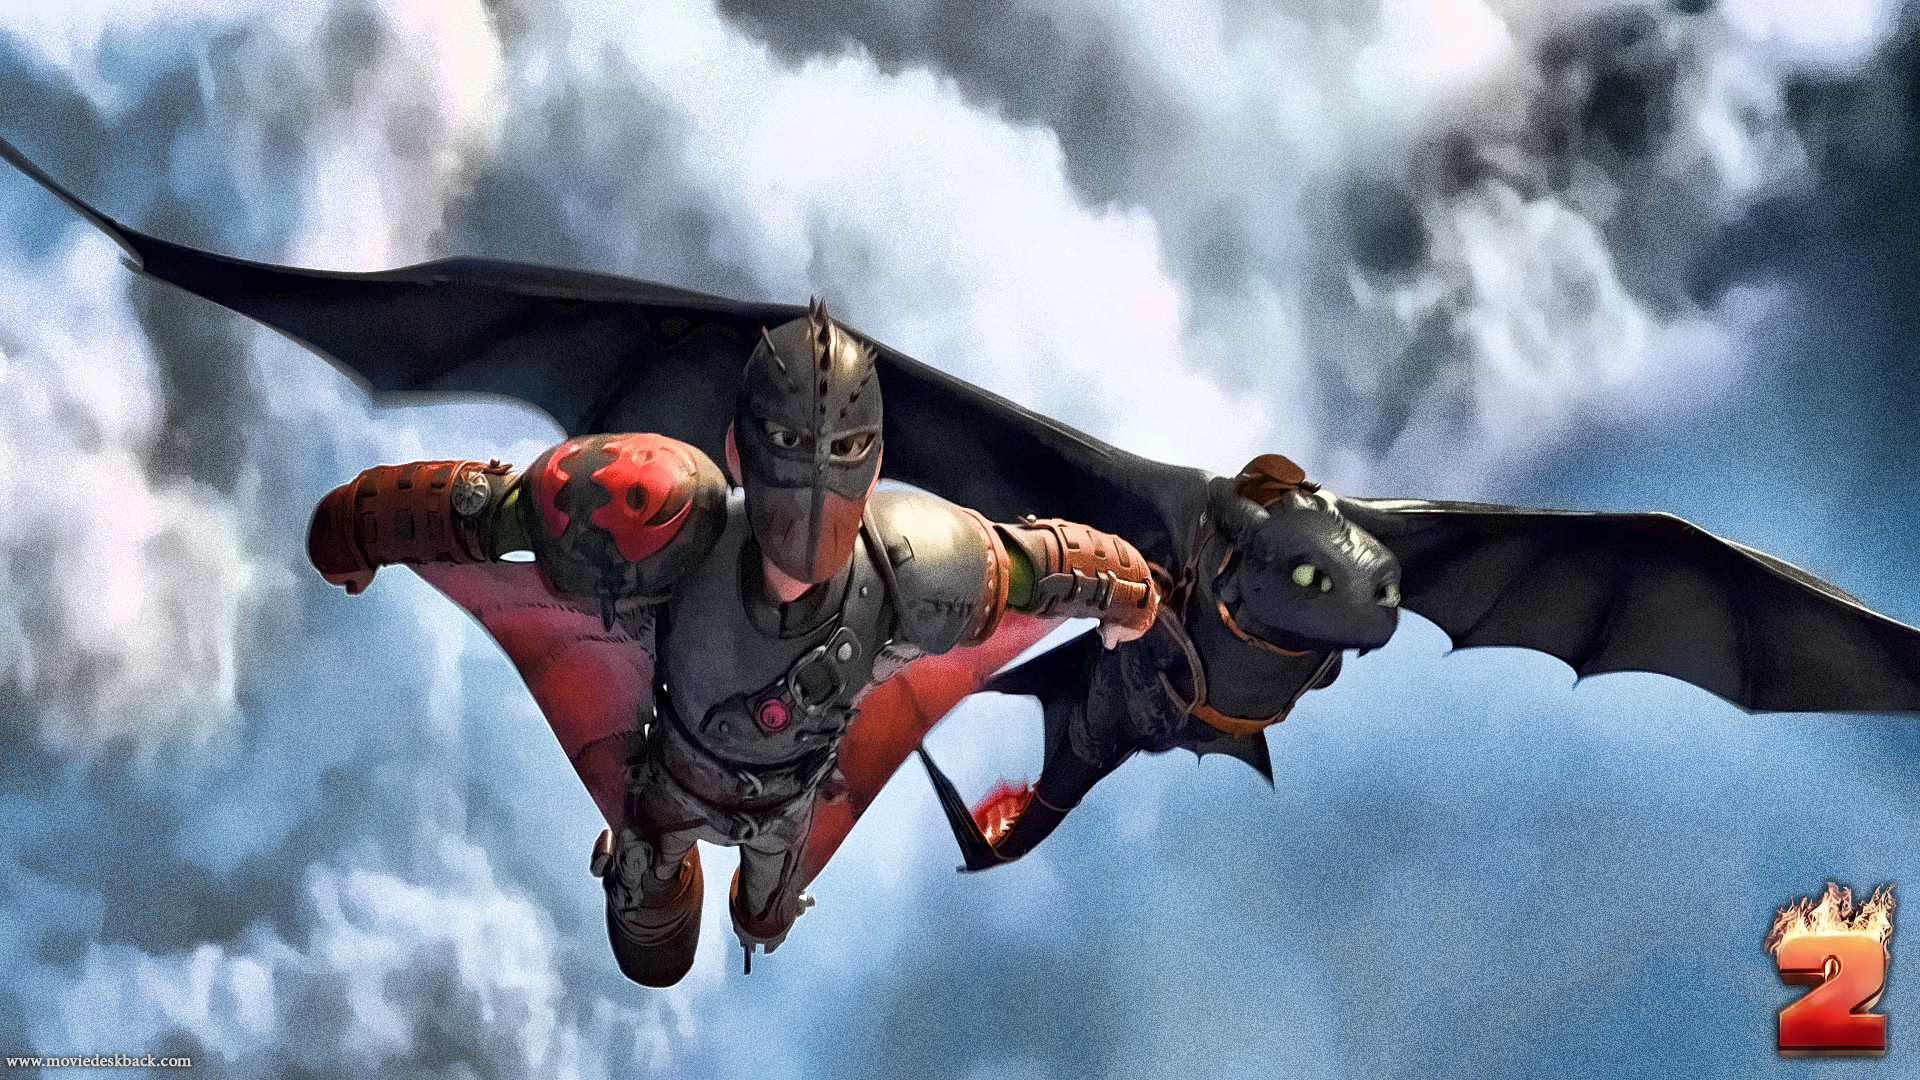 How To Train Your Dragon 2 Wallpaper 1920x1080 54518